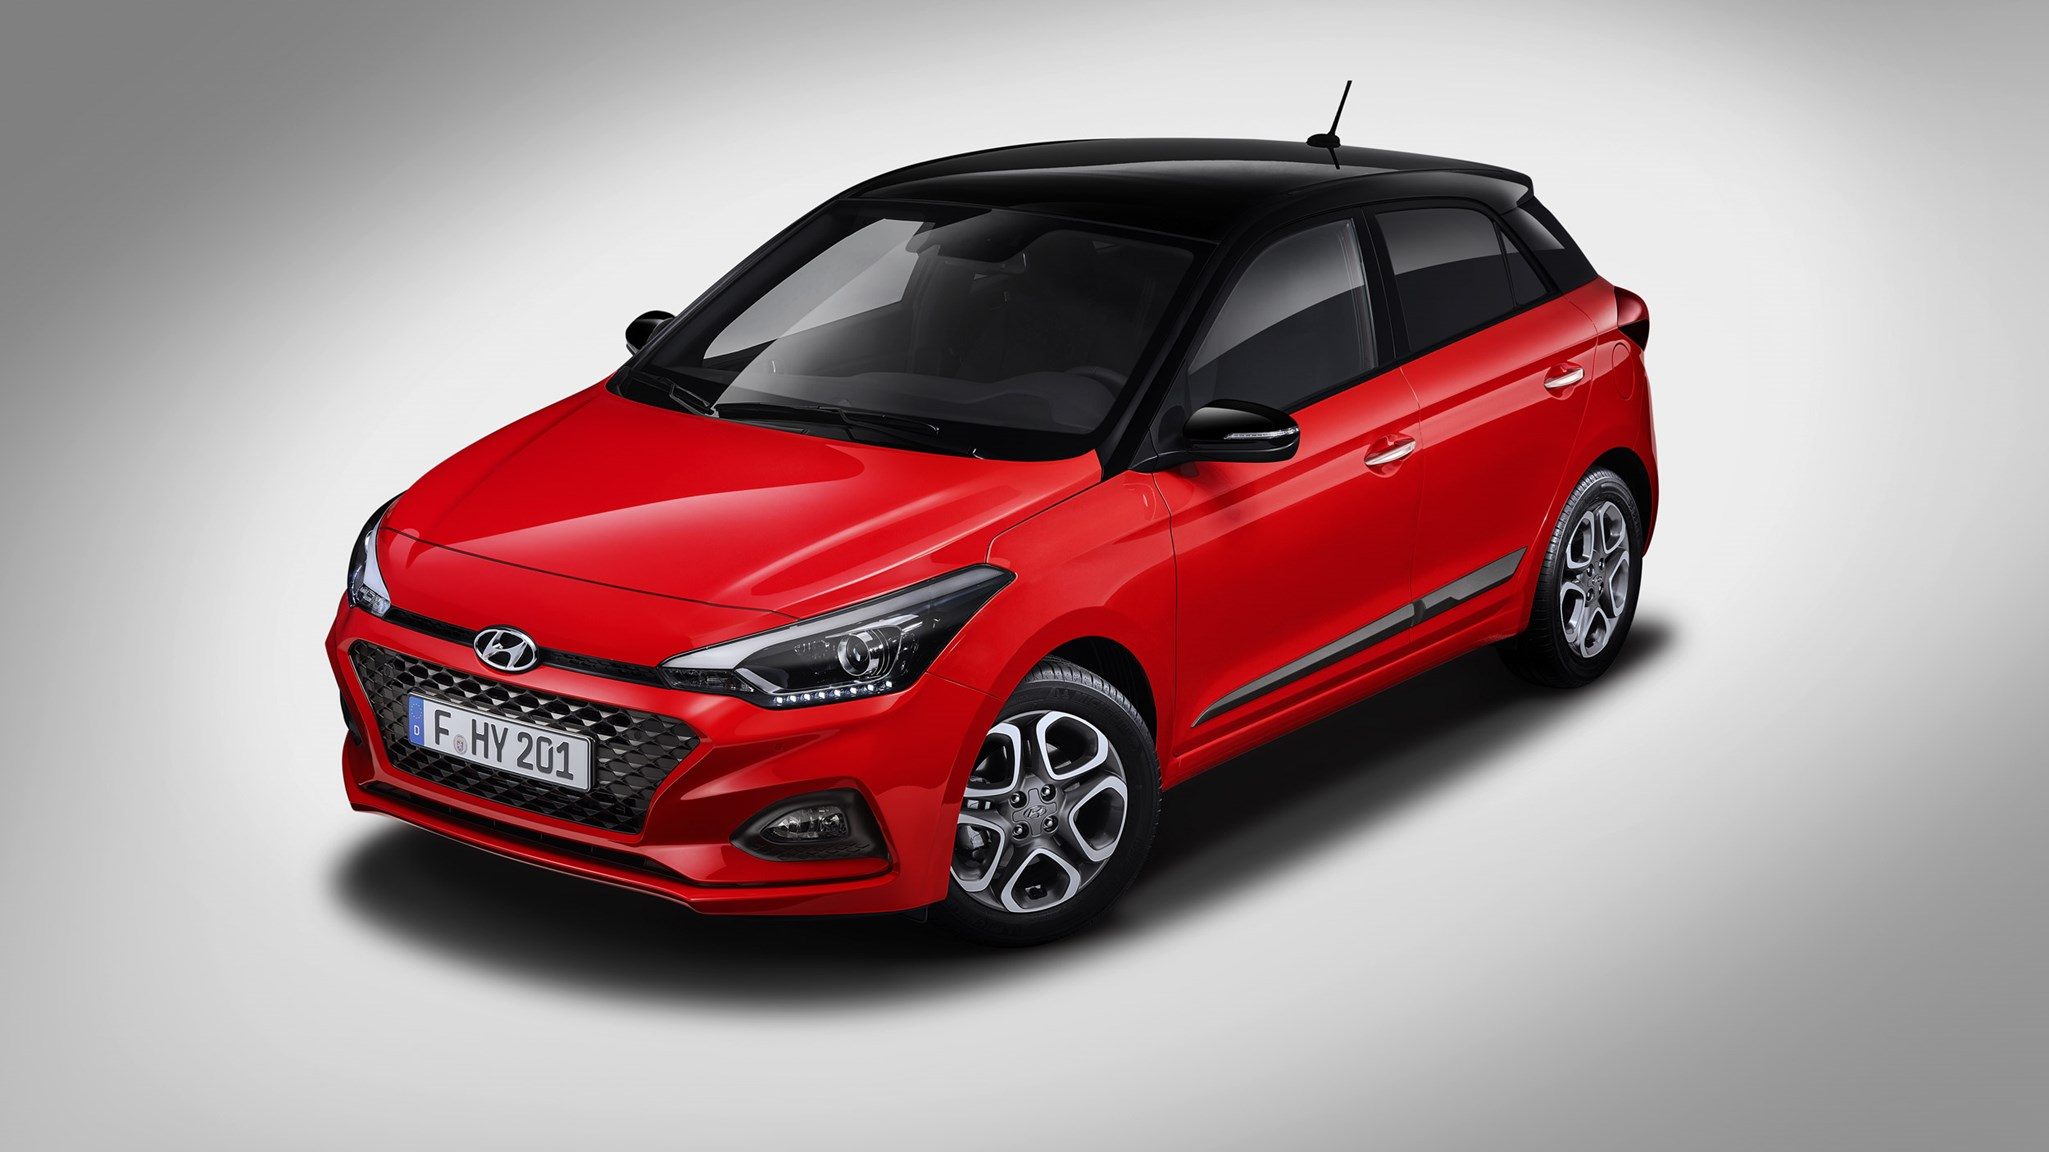 new hyundai i20 b segment hatch gets updated styling and. Black Bedroom Furniture Sets. Home Design Ideas